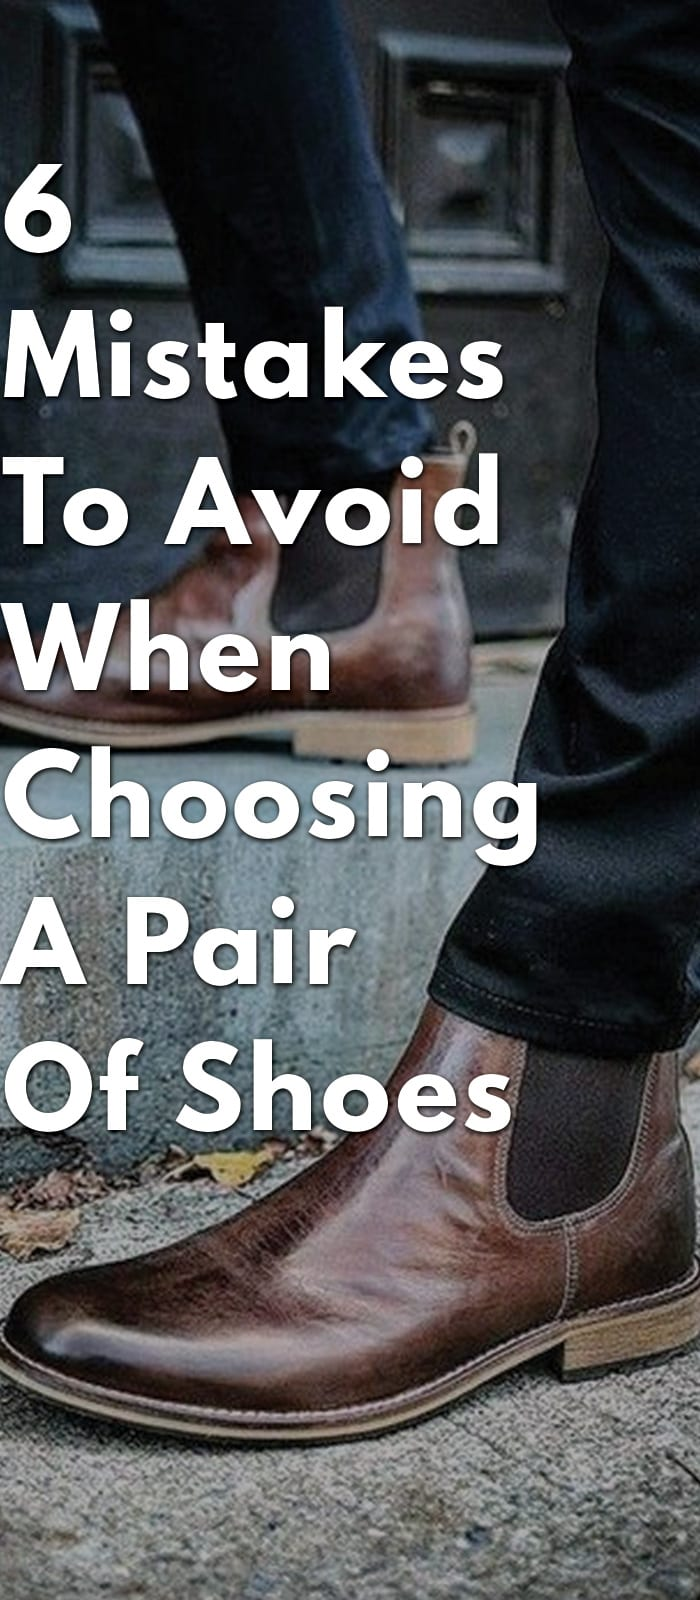 6-Mistakes-To-Avoid-When-Choosing-a-Pair-of-Shoes